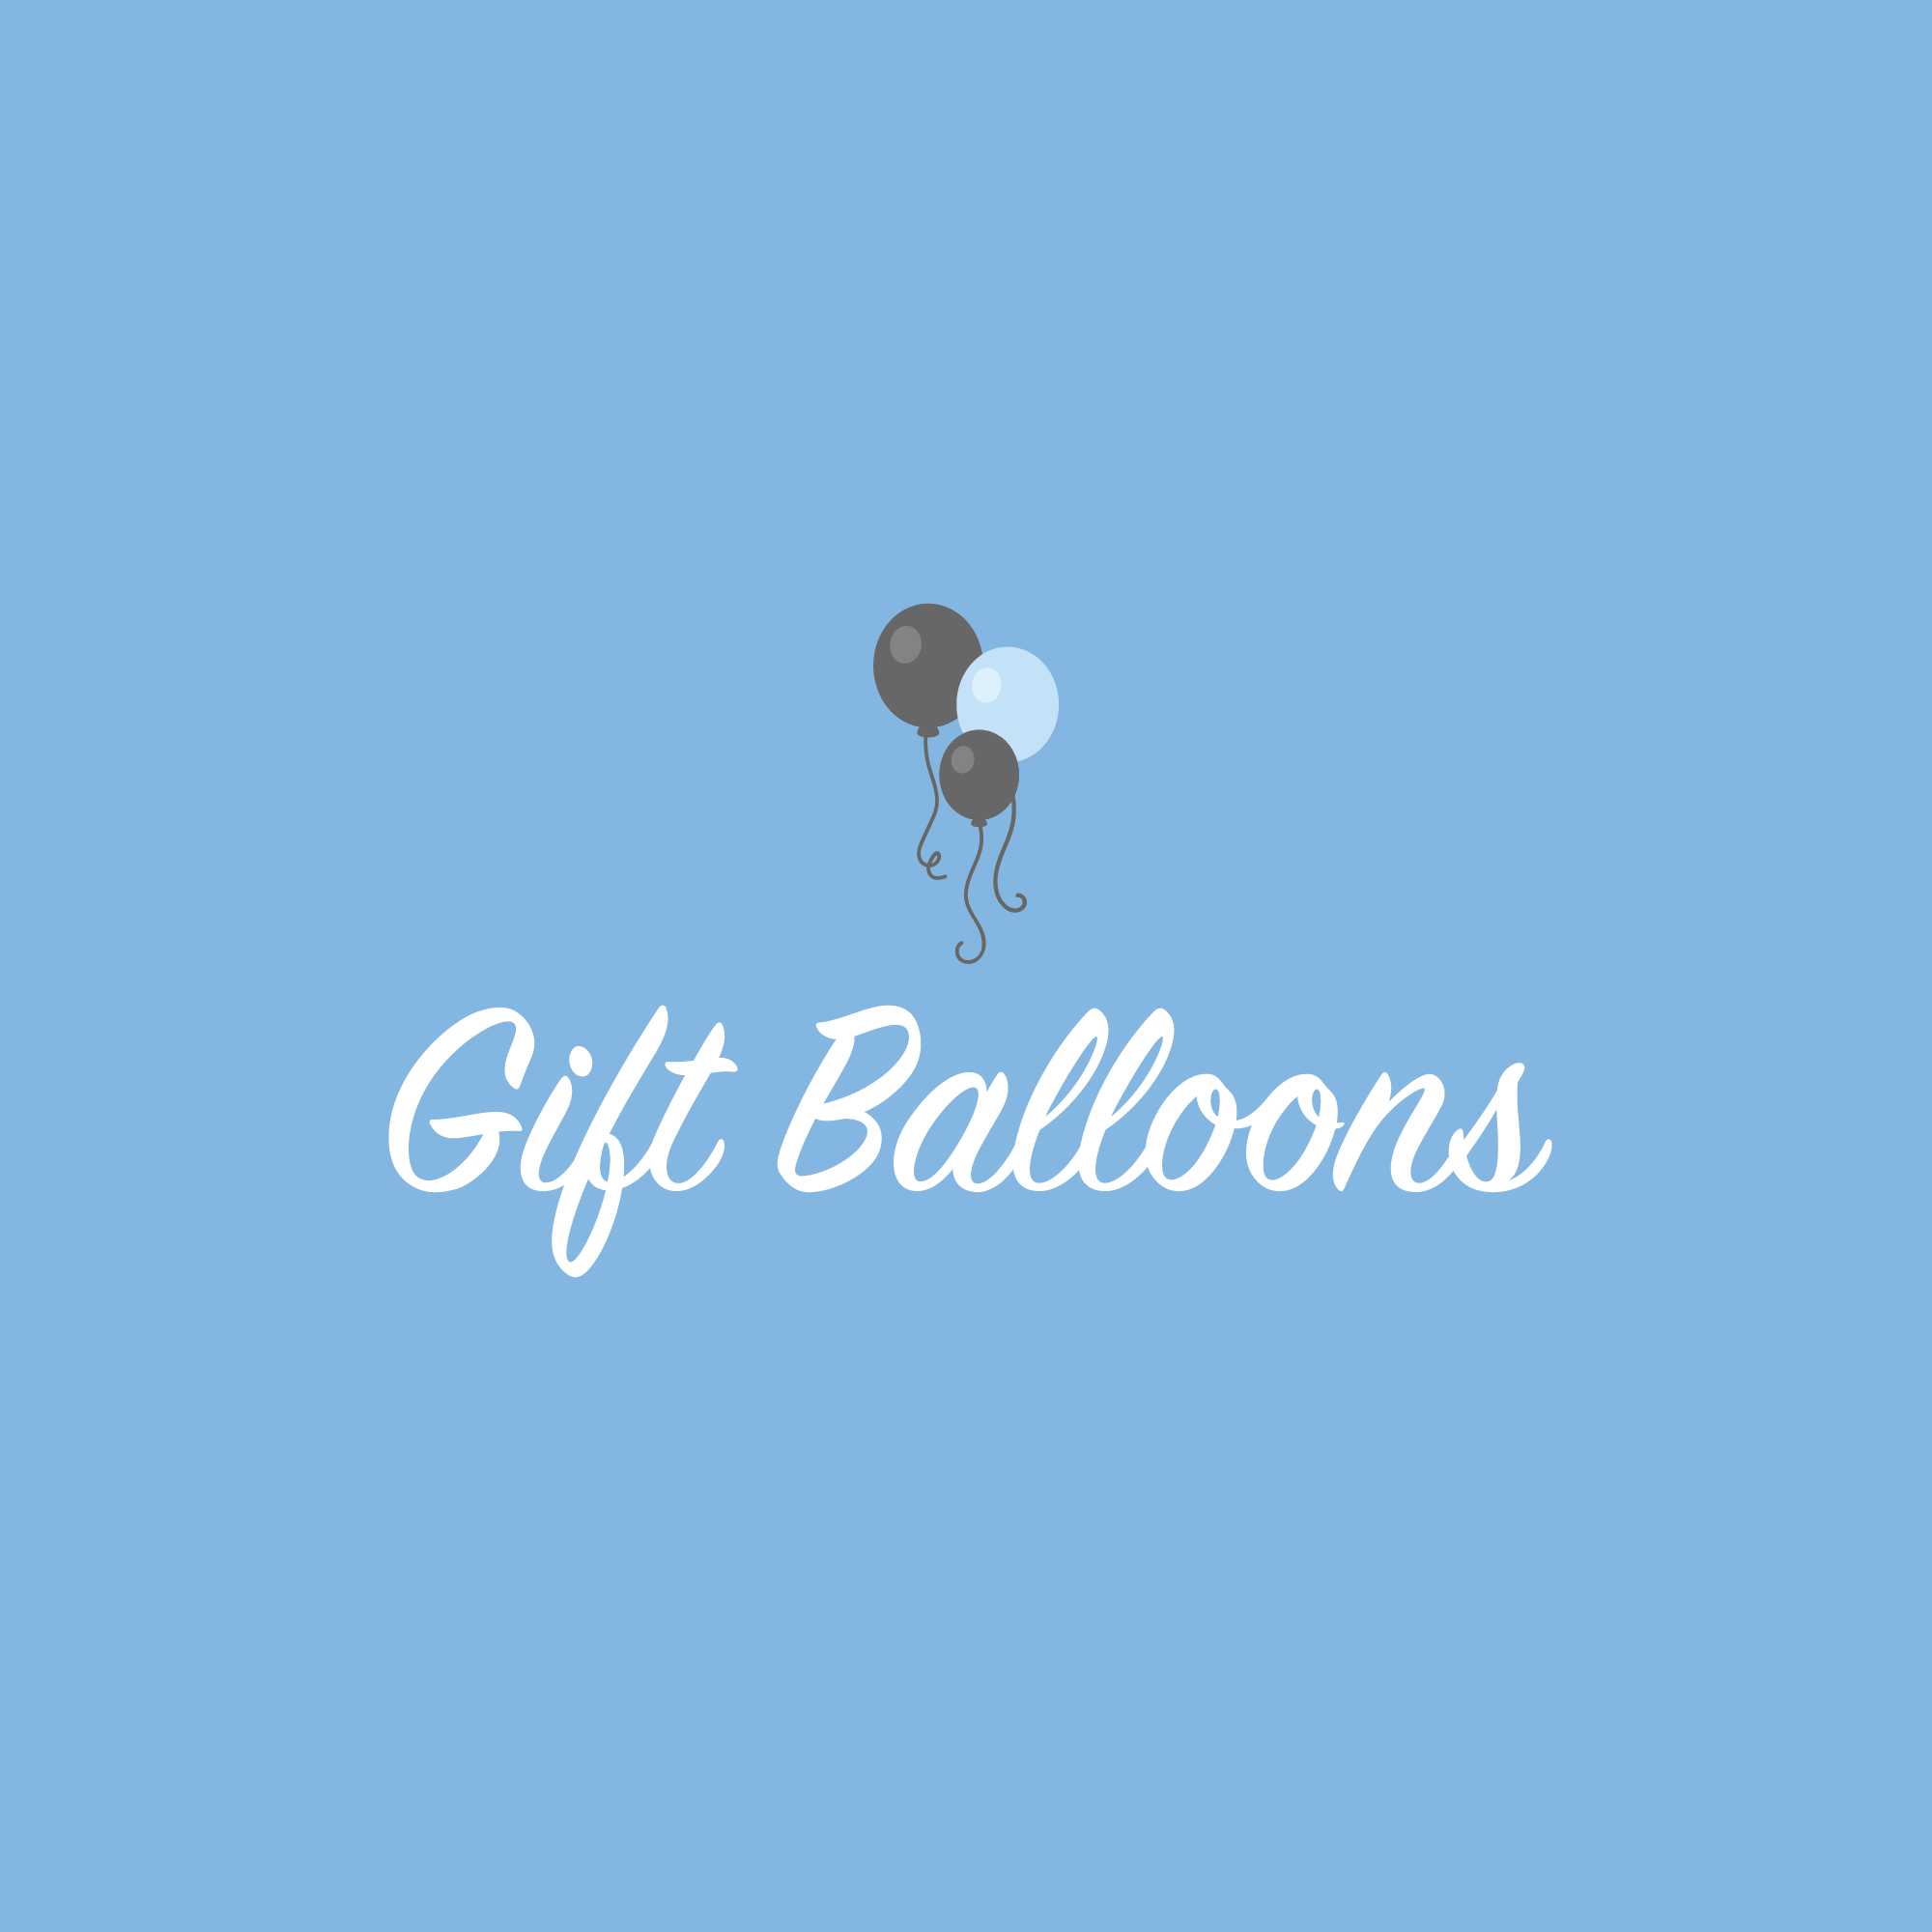 Instagram Story Cover - Gift Balloons Image